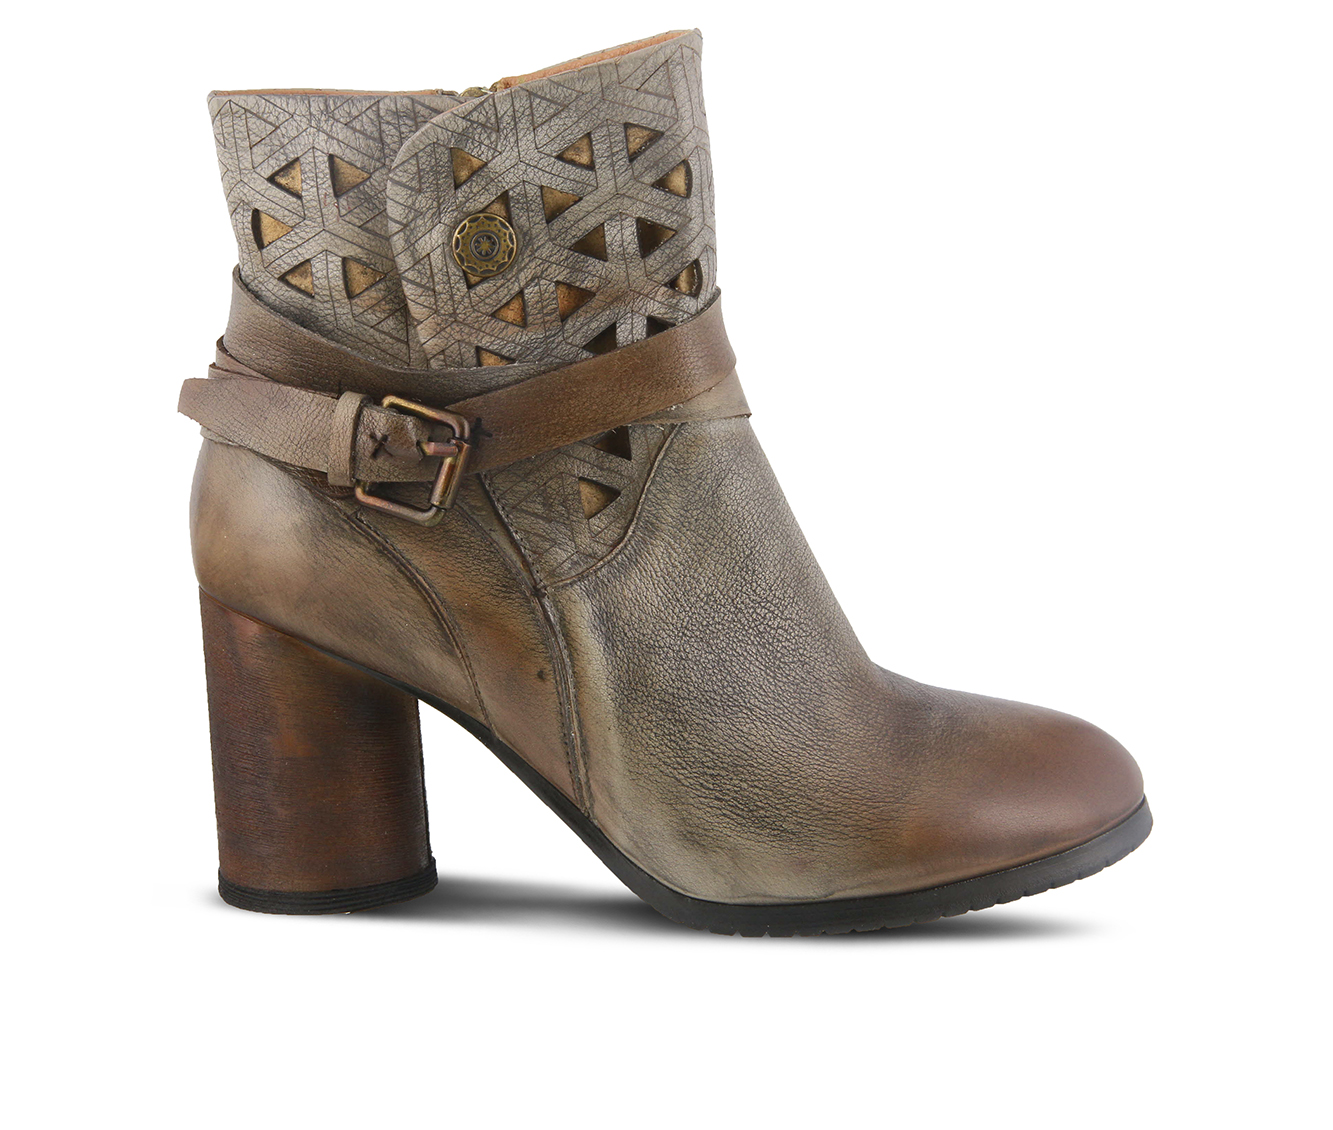 L'Artiste Madonna Women's Boots (Gray Leather)